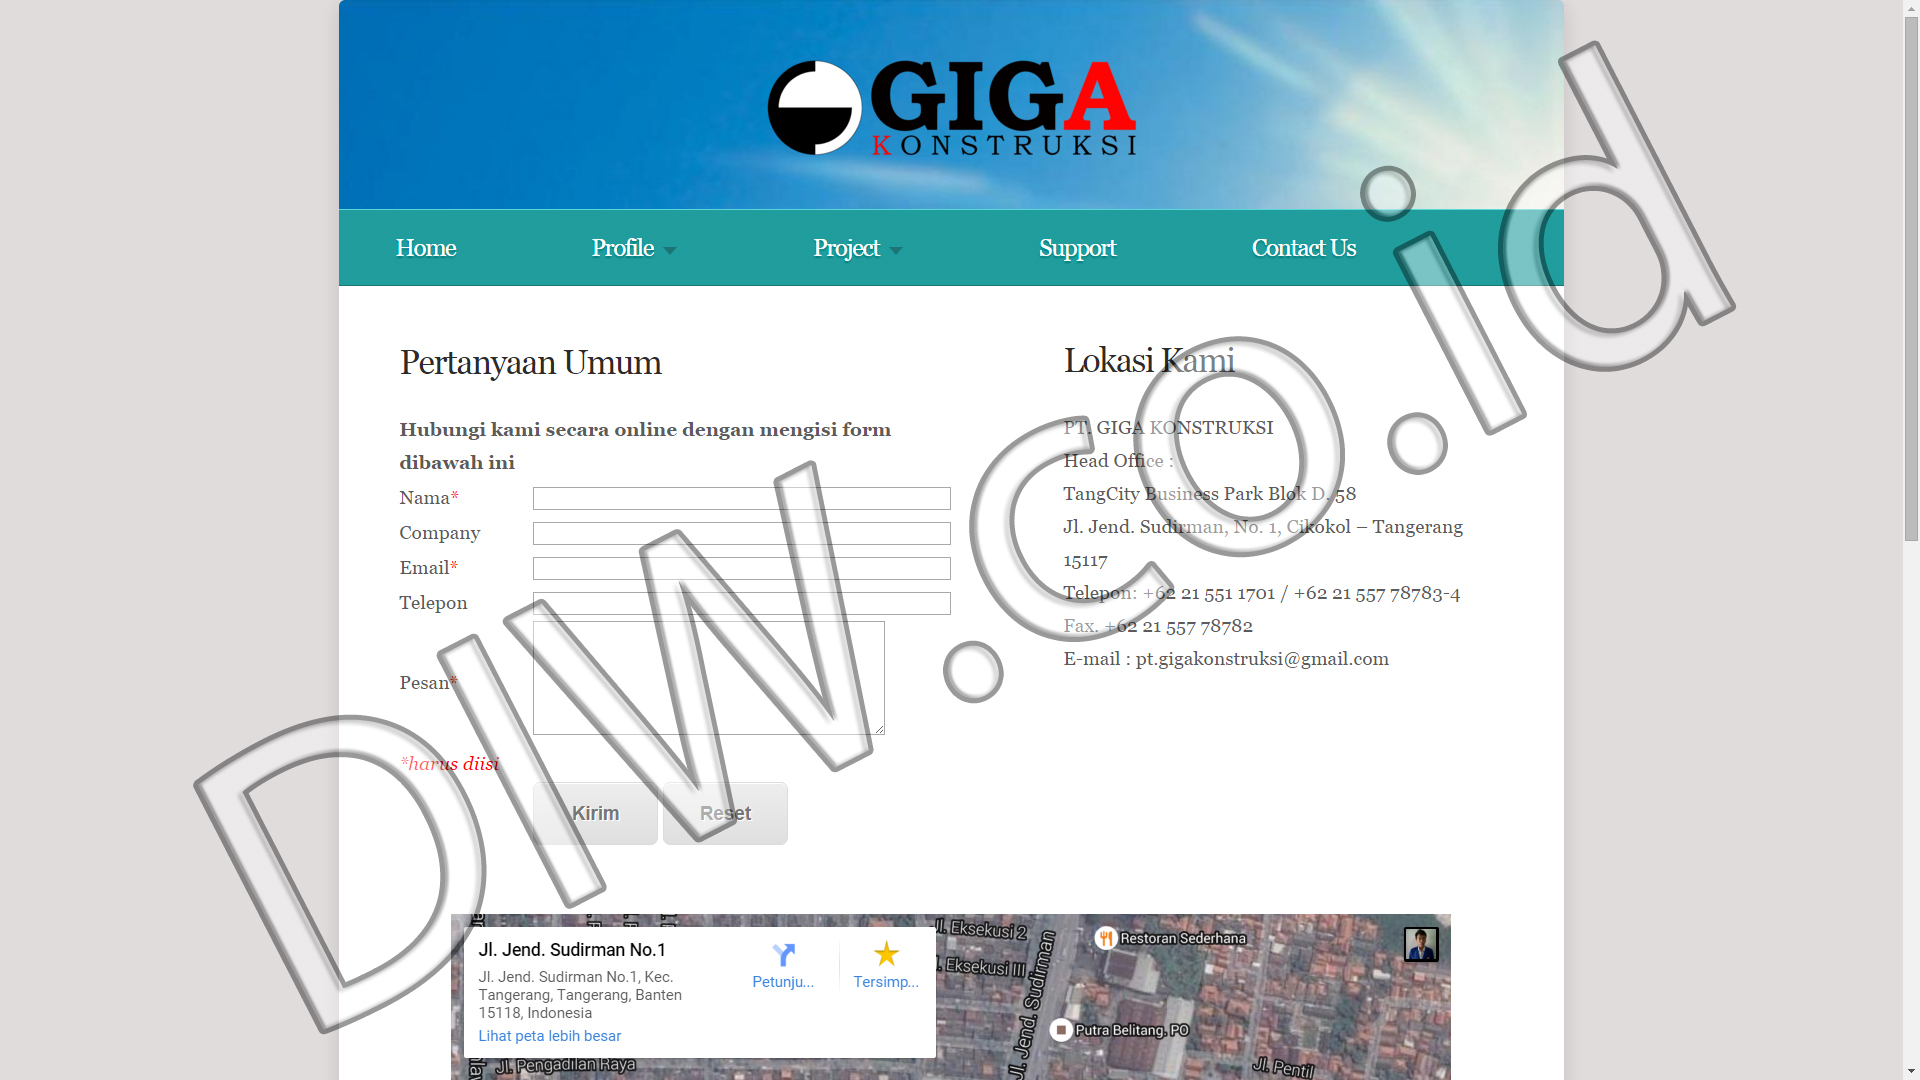 Portfolio 5 - PT Giga Kontruksi - Andri Sunardi - Freelancer - Web Developer - CEO DIW.co.id